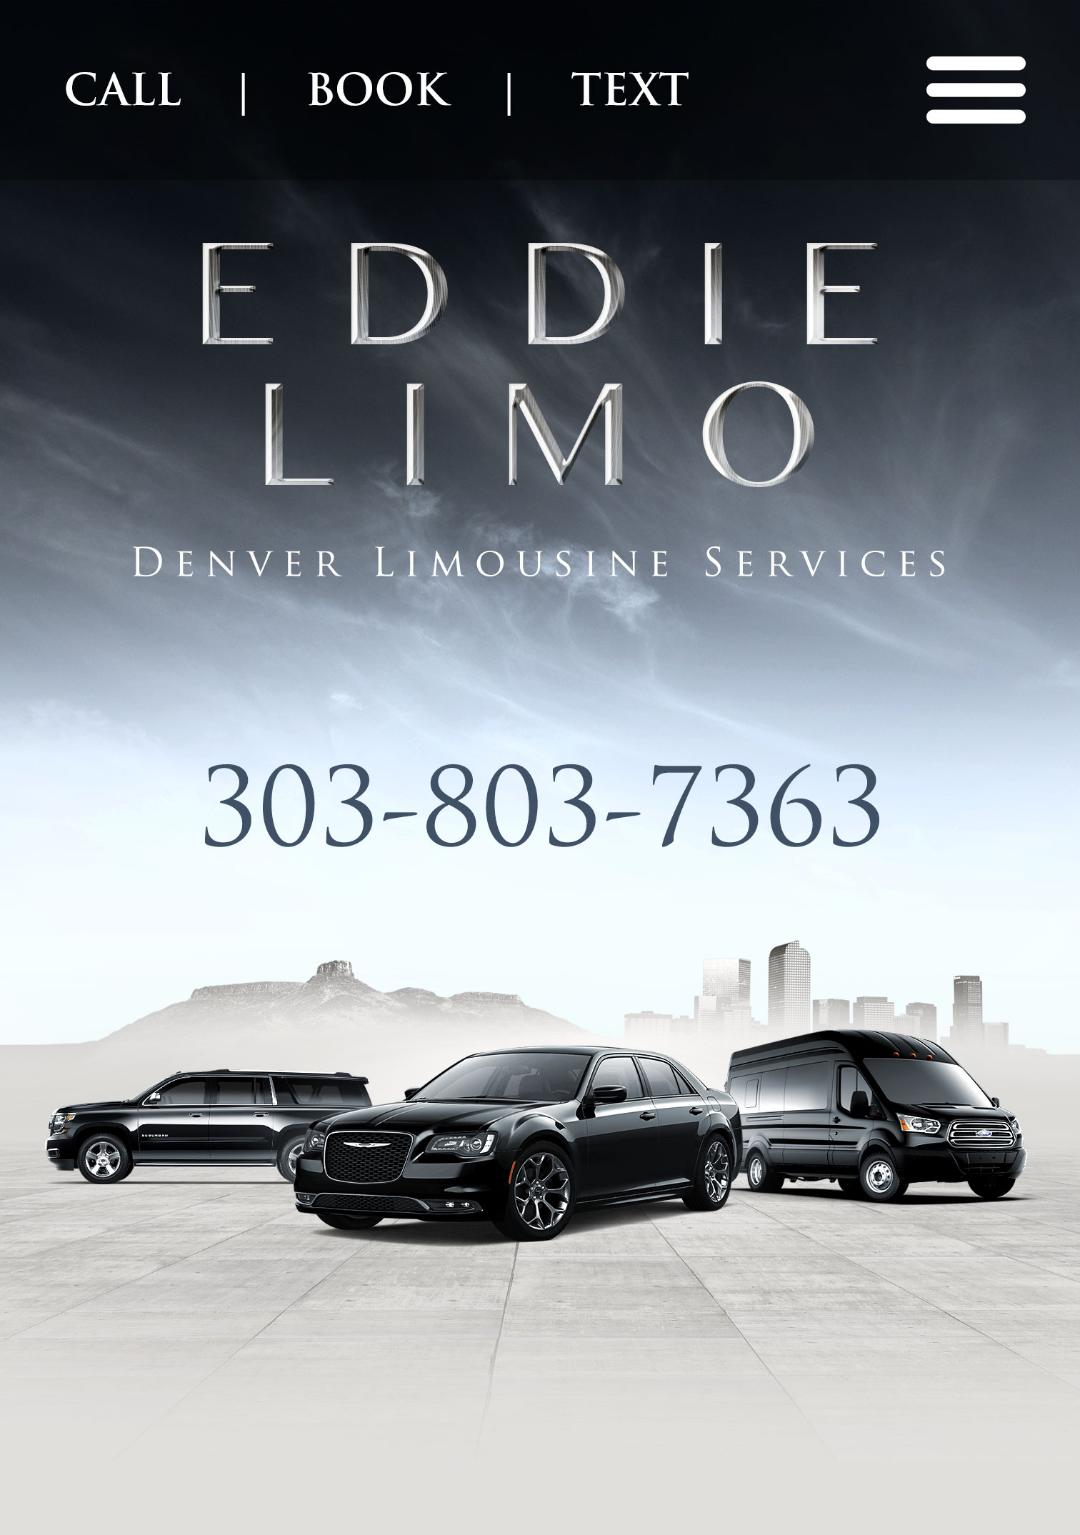 Denver's Eddie Limo Celebrates 17th Anniversary of its Limousine Services